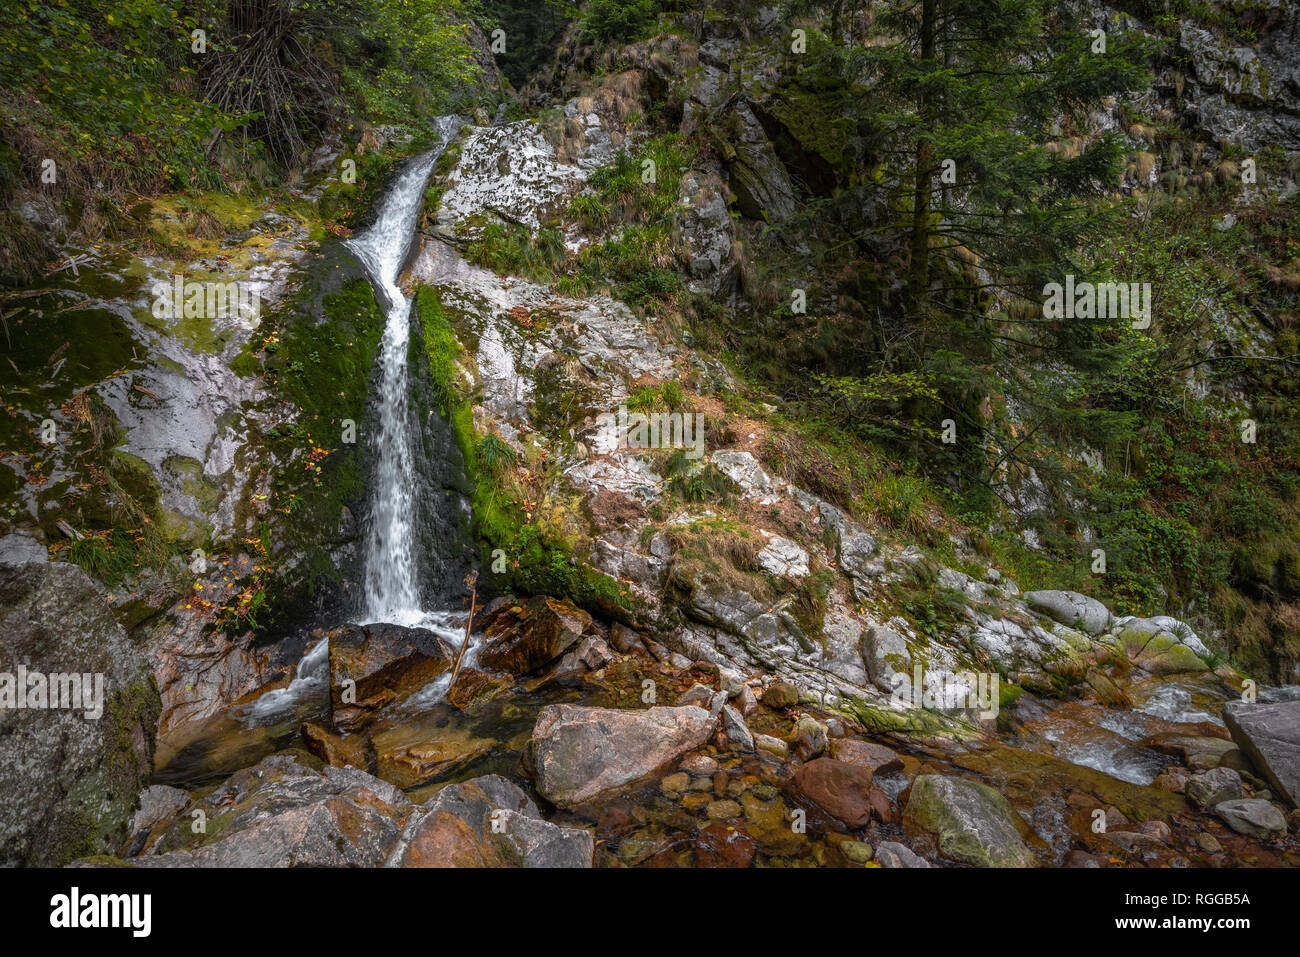 All Saints Waterfalls, town Oppenau, Northern Black Forest, Germany, upper section - Stock Image